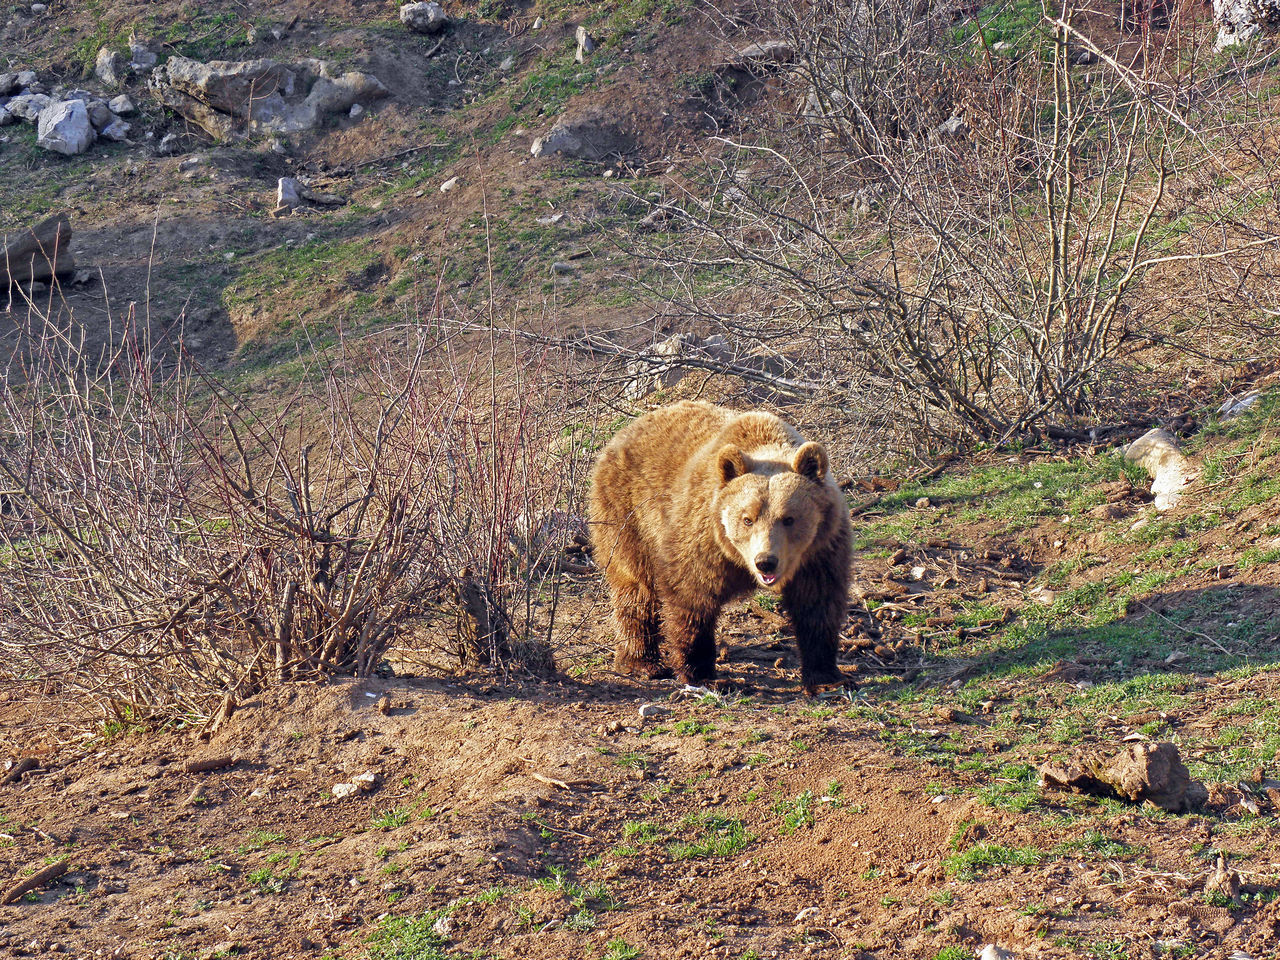 Kuterevo,Lika,Croatia,Europe,refugee camp for young bears,4 Animal Themes Animals Bear Croatia Eu Europe Field Kuterevo Lika Mammal Nature Outdoors Refugee Camp Refugee Center Springtime Young Bear Zoology